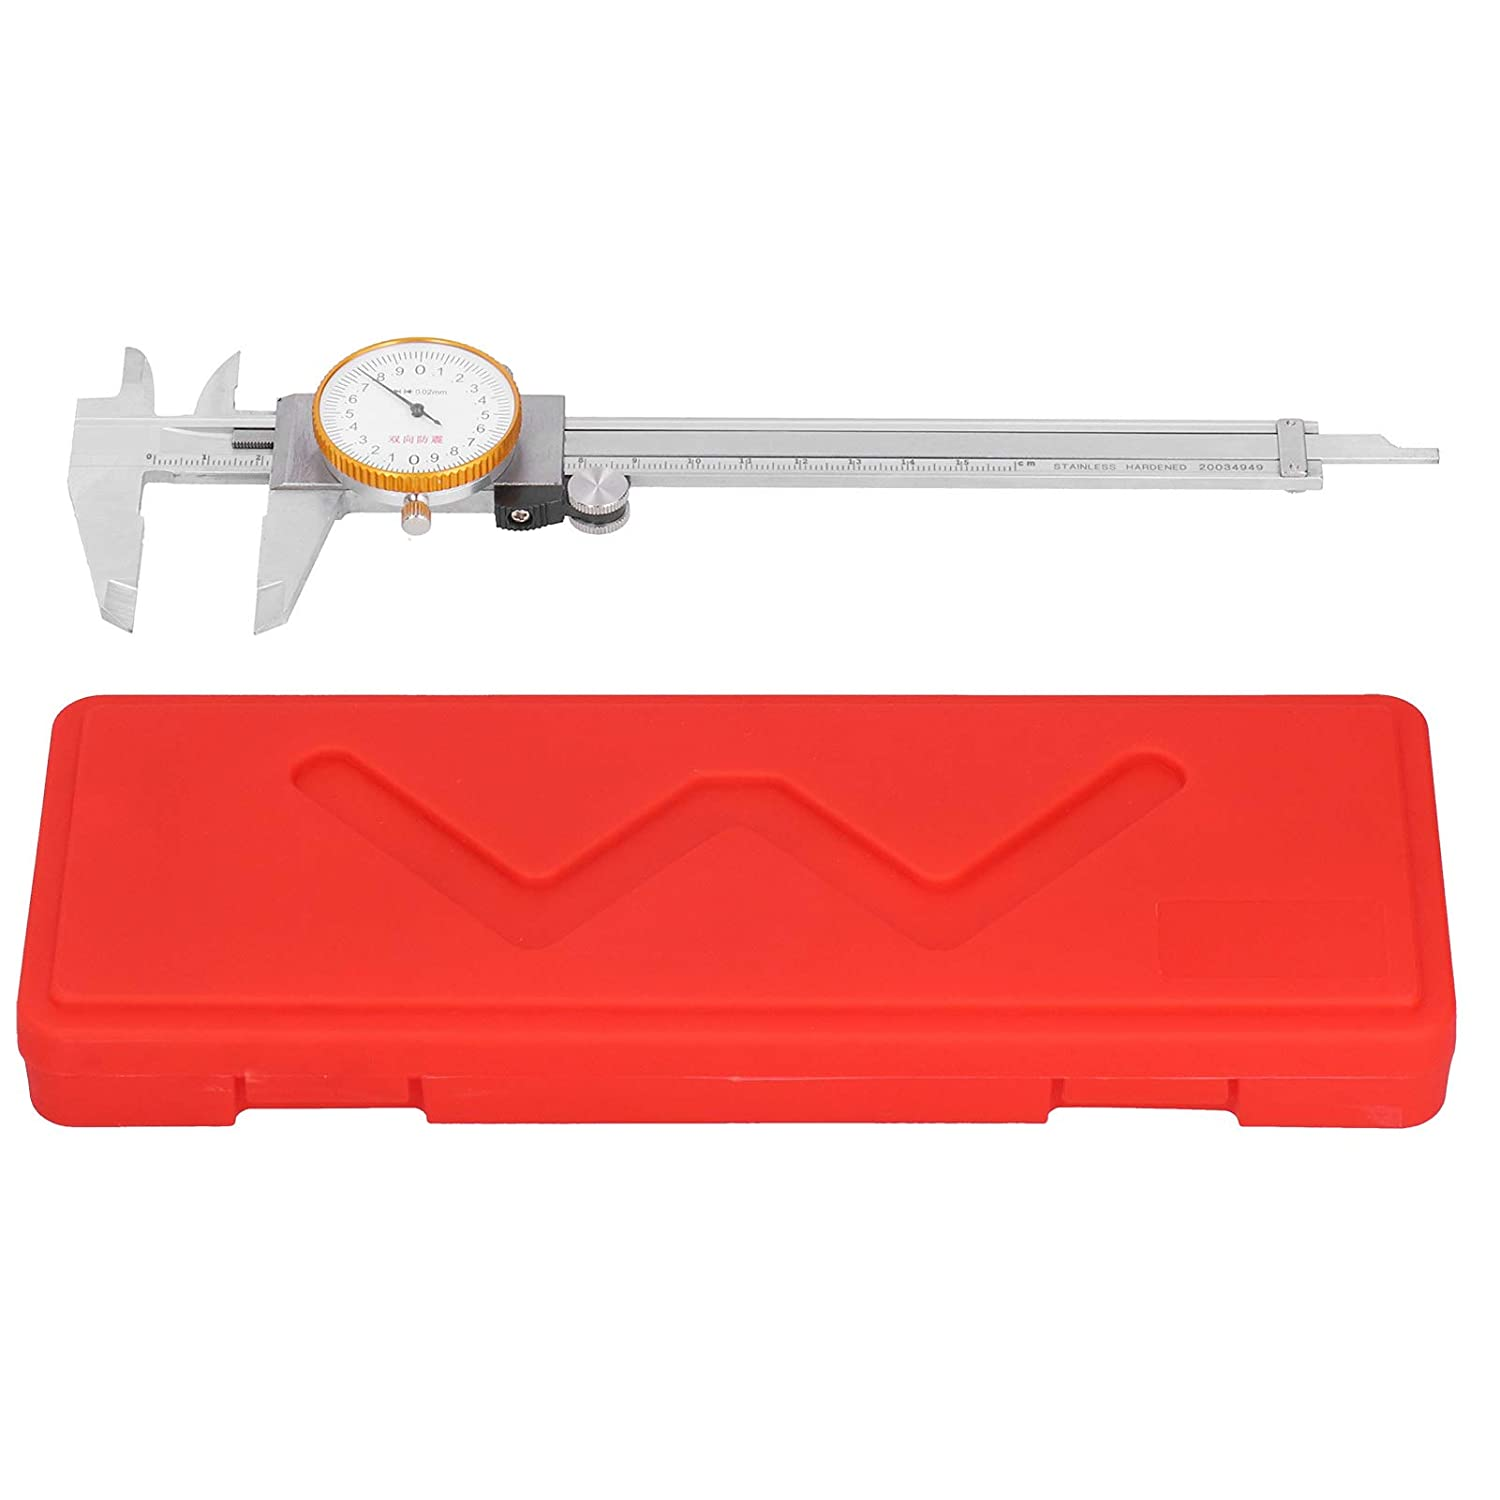 A surprise price is realized Simple Complete Free Shipping Dial Caliper Vernier Metal Frame Stainles Material Steel